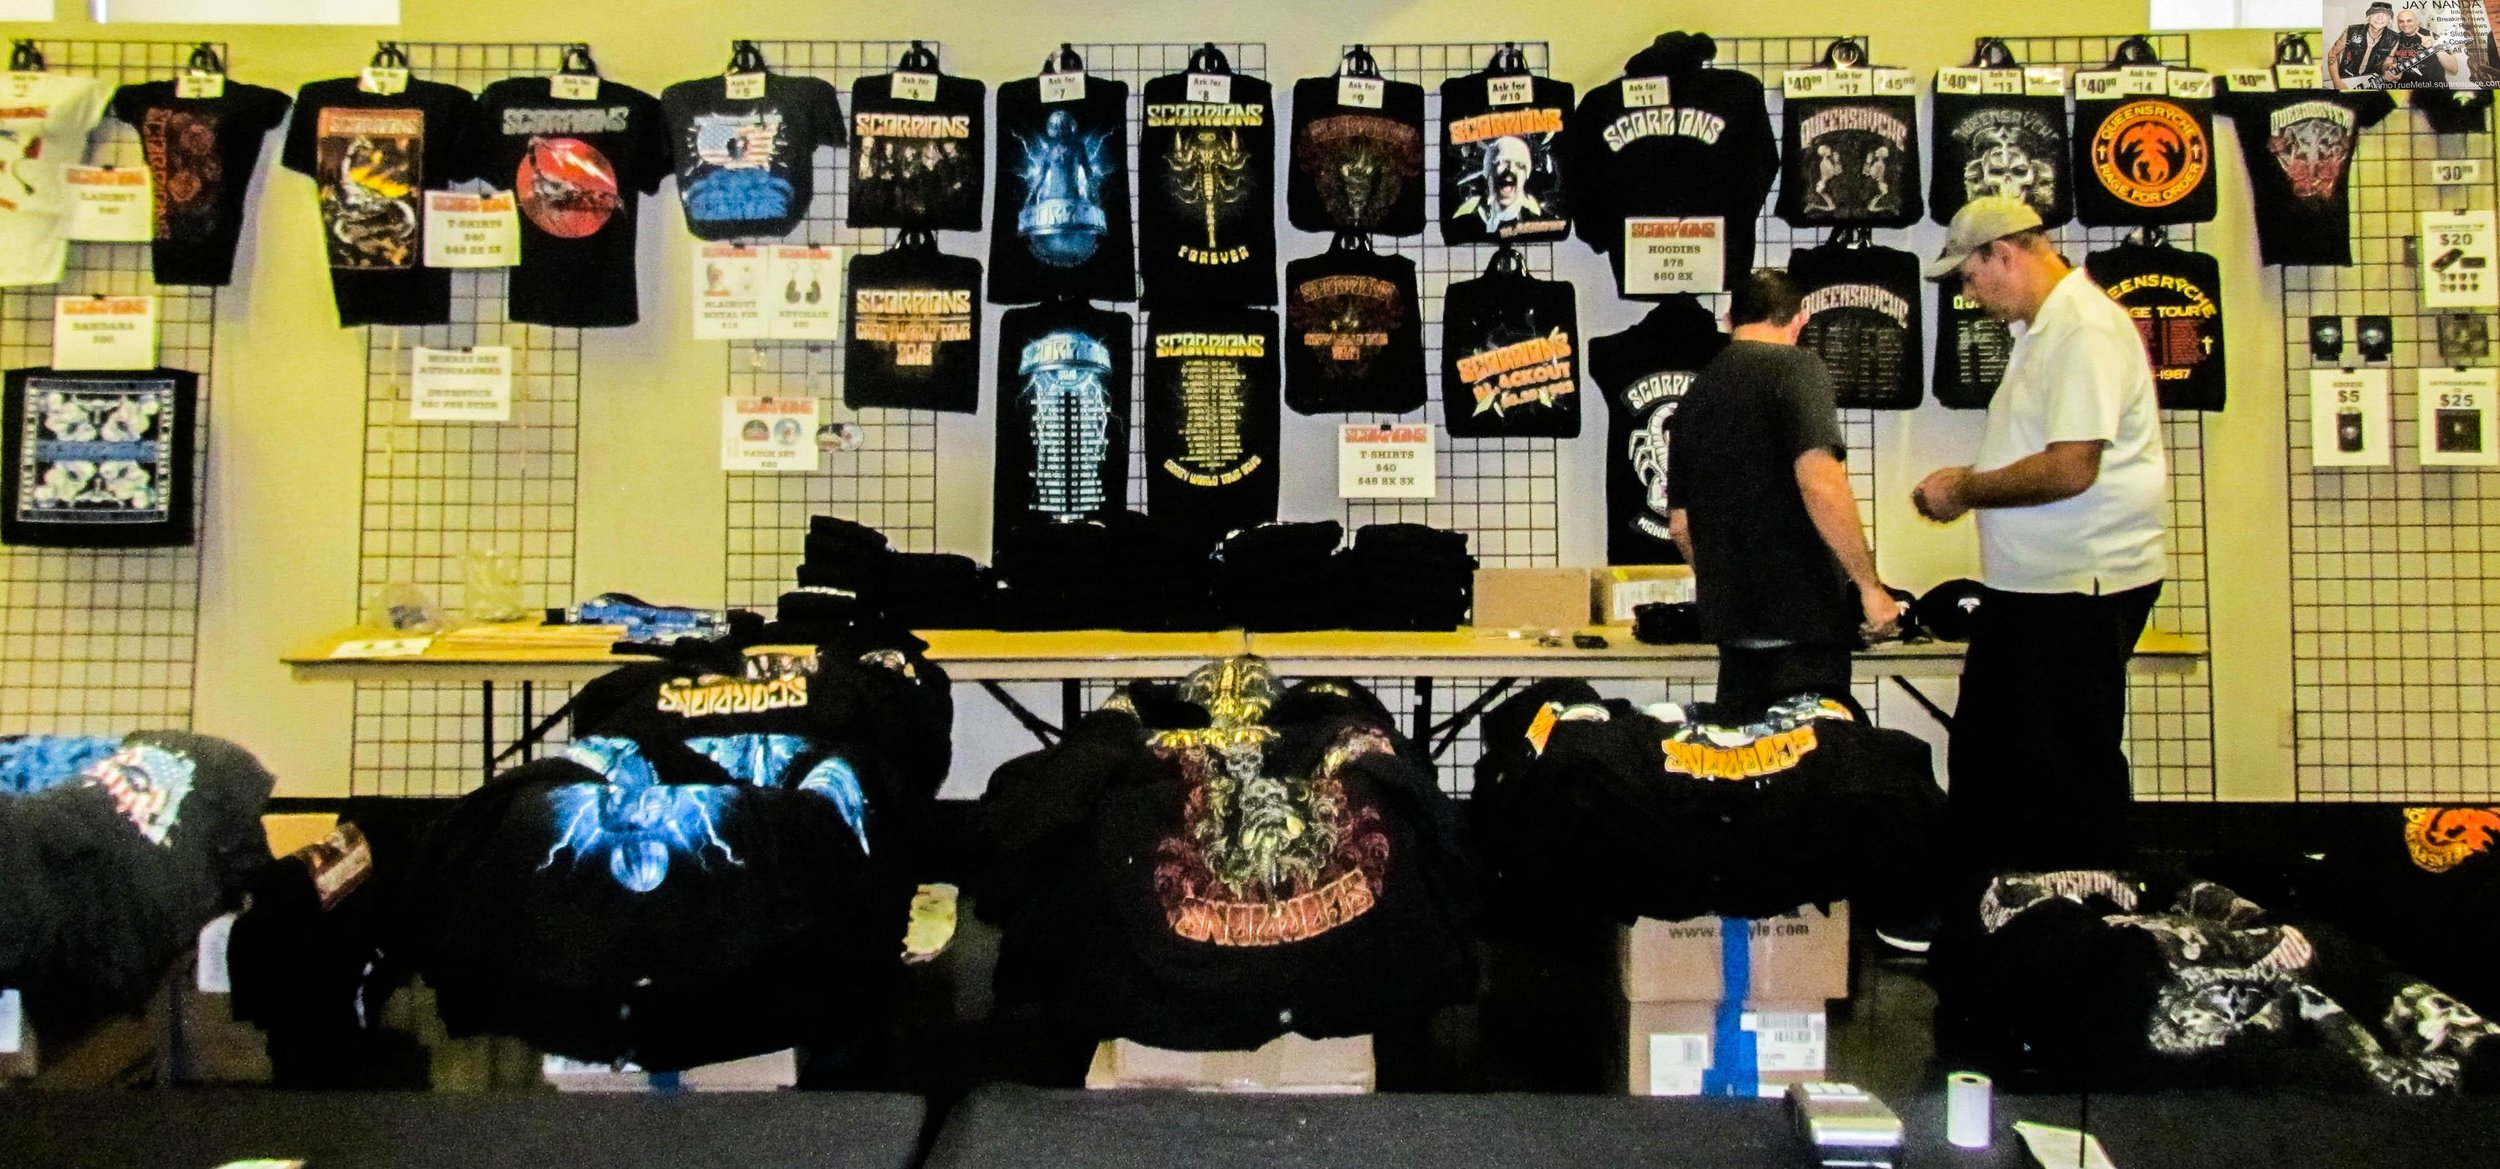 The merch booth displays the shirts, hats and other products of Scorpions and Queensryche.